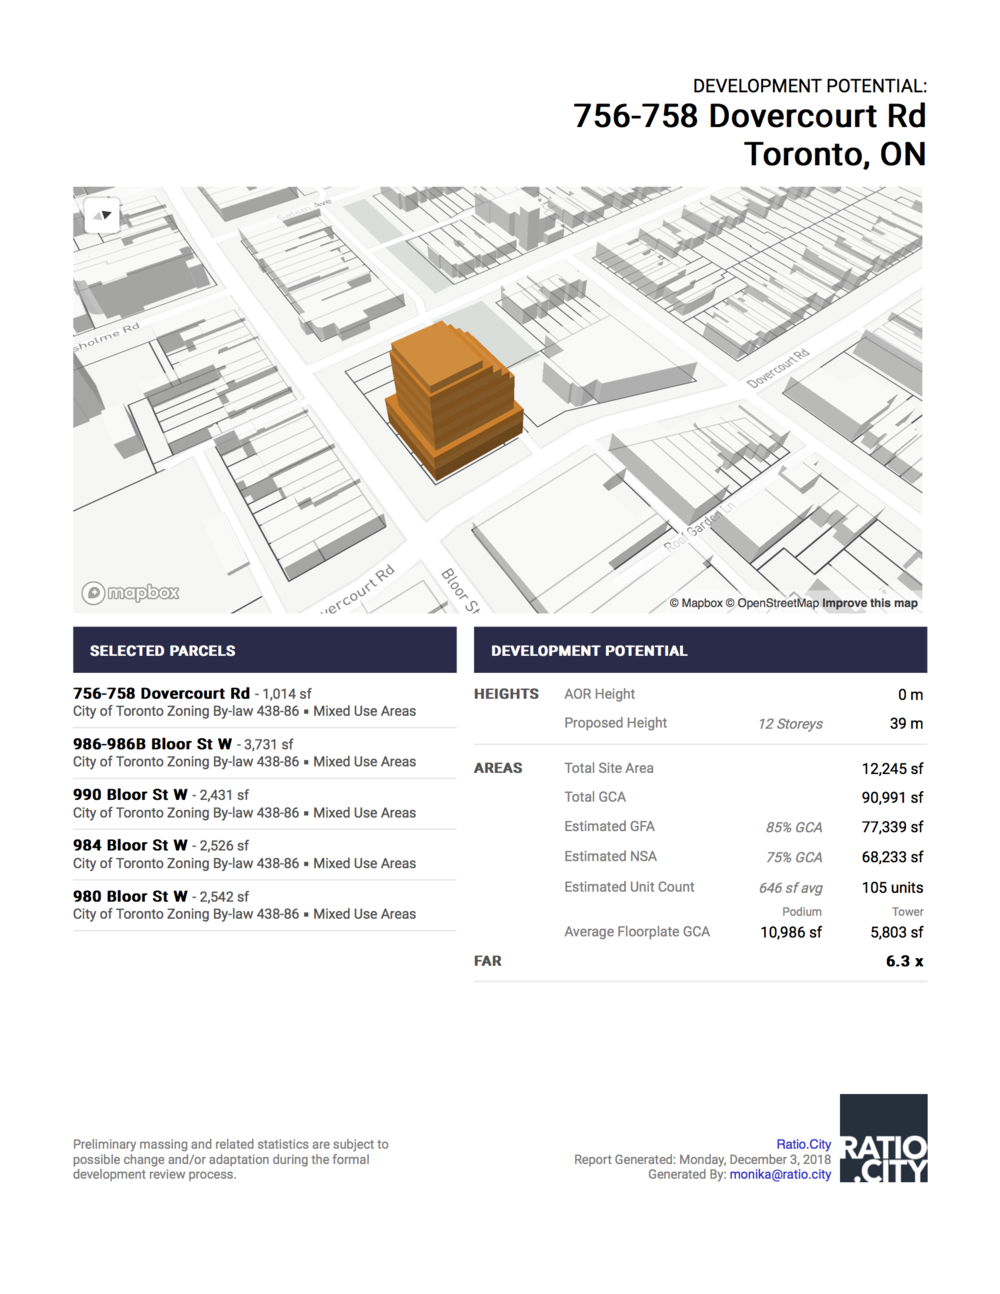 Development Potential: - Multi-page report providing an instant summary of site analysis and built form evaluation, including a customizable view of the 3D Massing Model, list of parcels in land assembly, total site area, GCA, GFA, NSA, density. A second page records the assumptions and inputs (setbacks, angular planes) and provides a detailed floor by floor breakdown of areas.